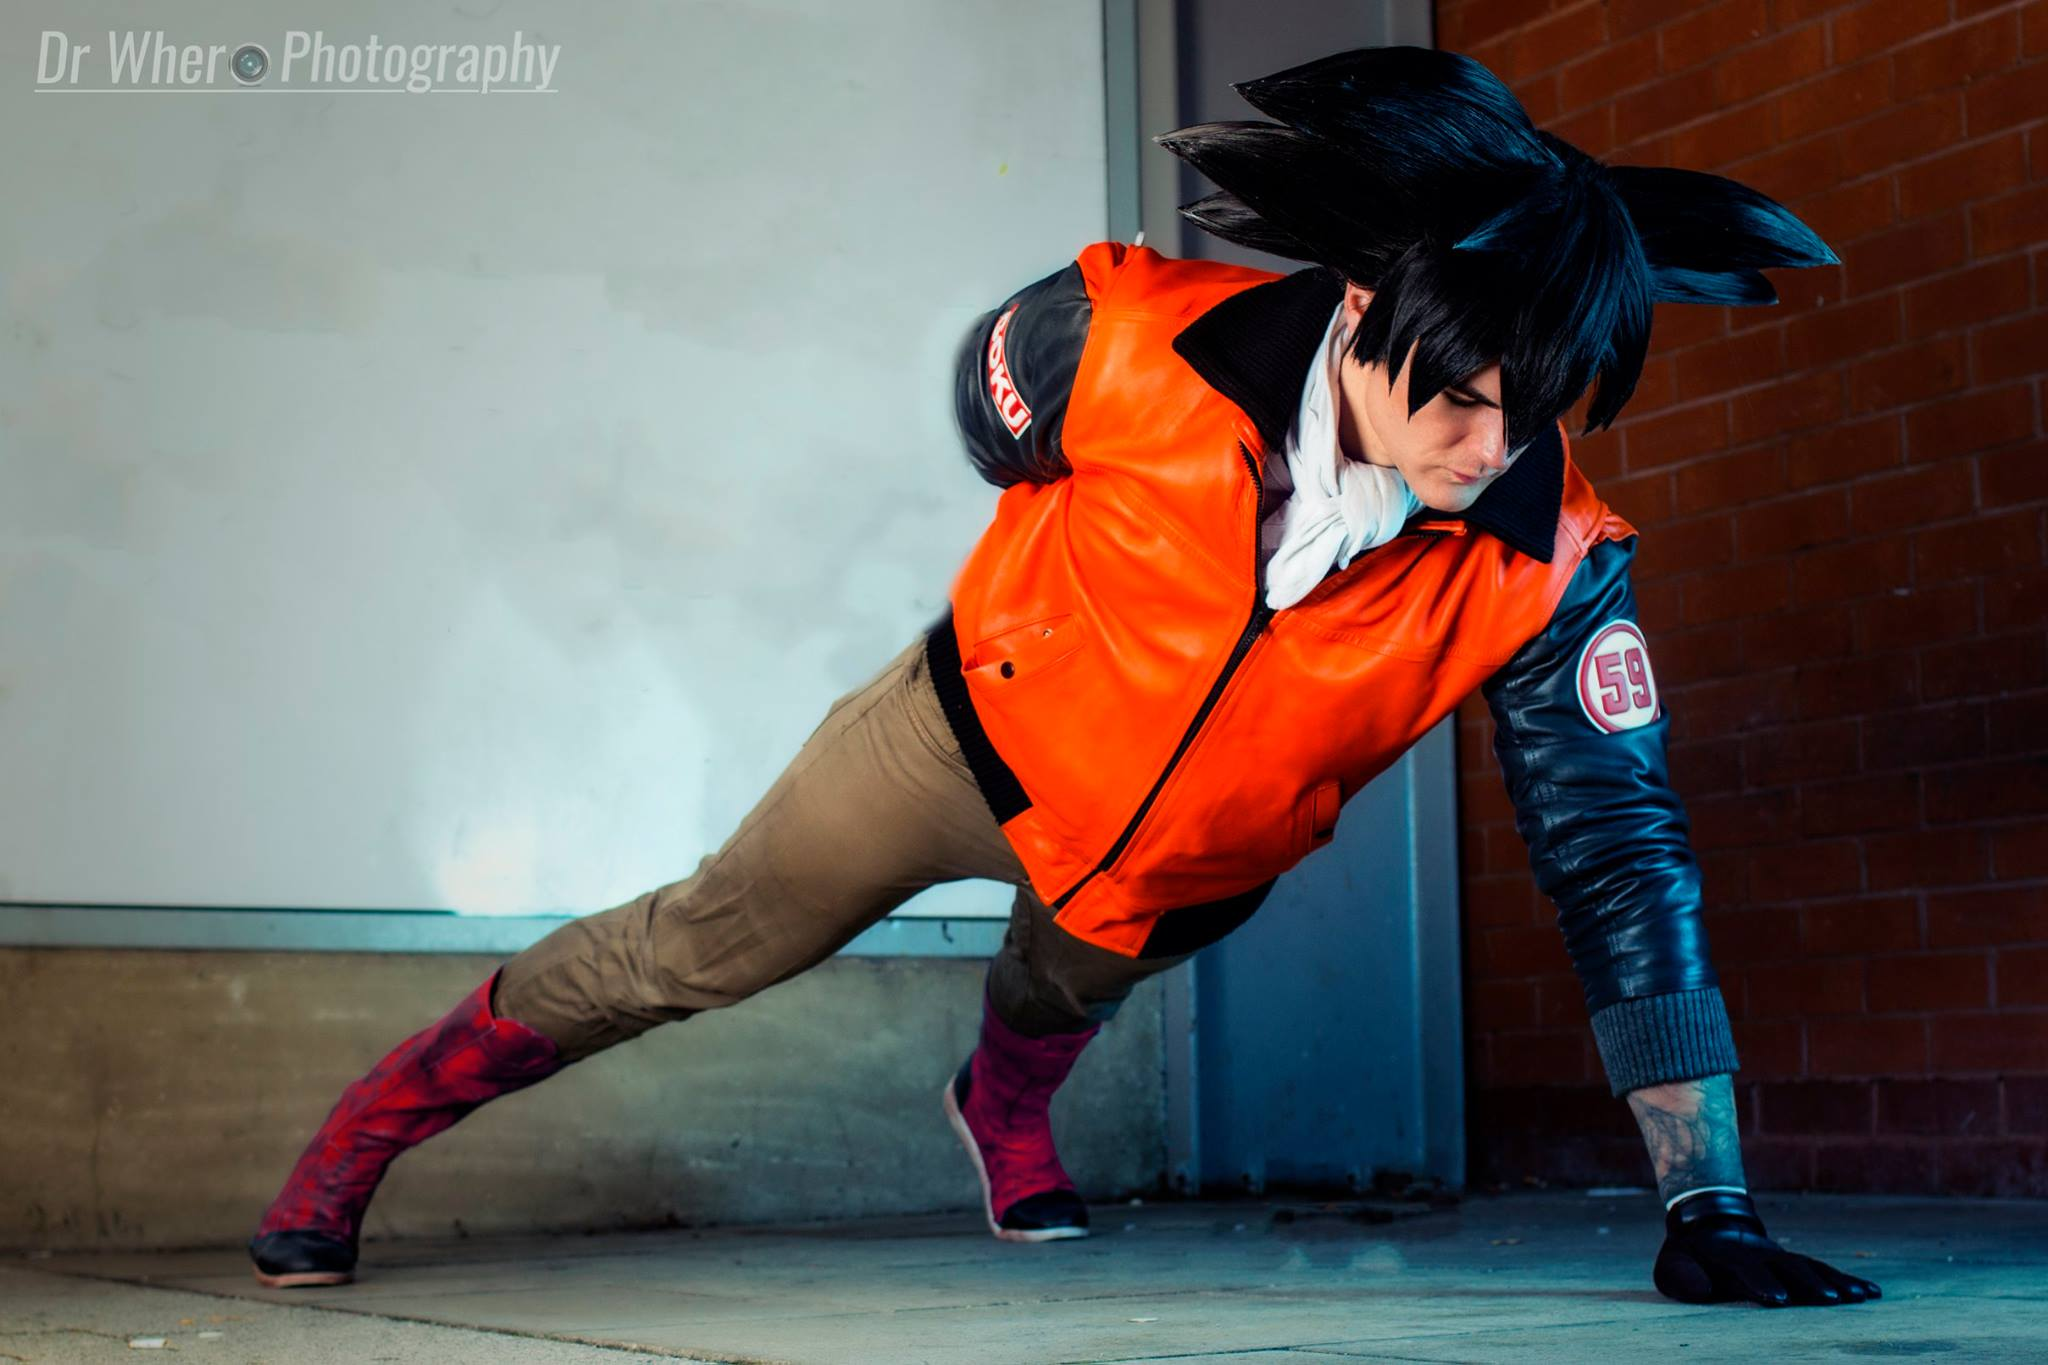 Goku Cosplay From DragonBall Z Wearing His Cell Games 59 Jacket Doing Push Ups